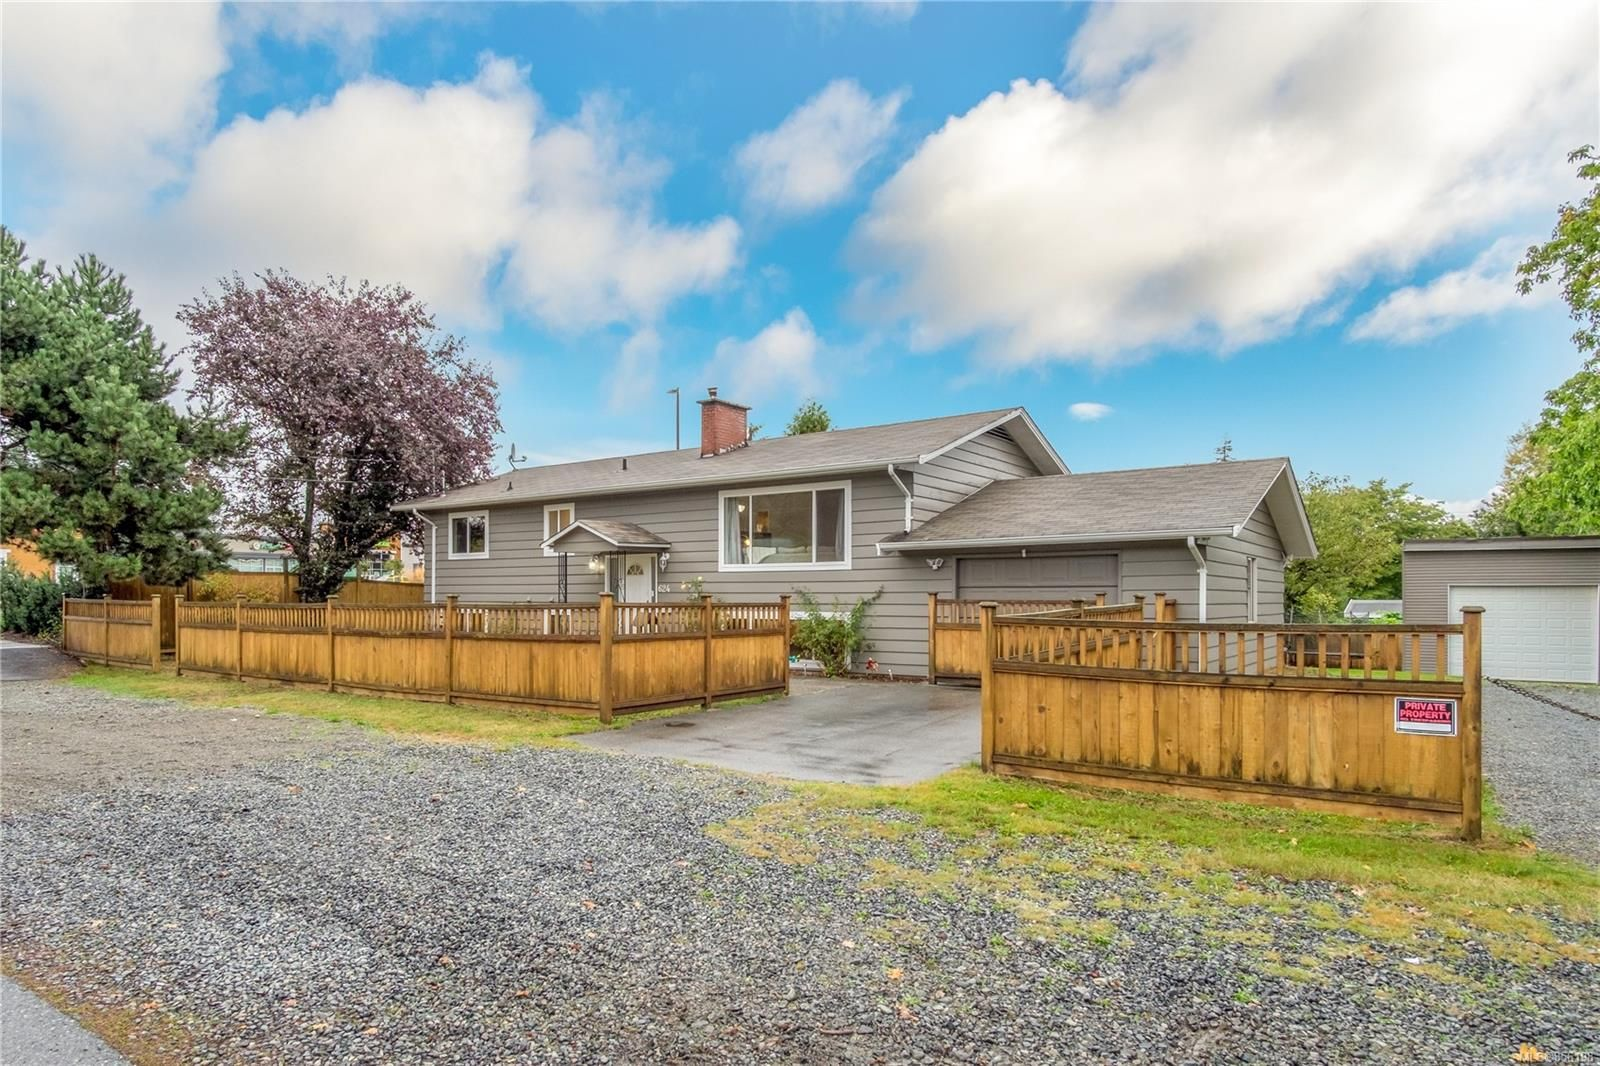 Main Photo: 624 Shepherd Ave in : Na University District House for sale (Nanaimo)  : MLS®# 856198